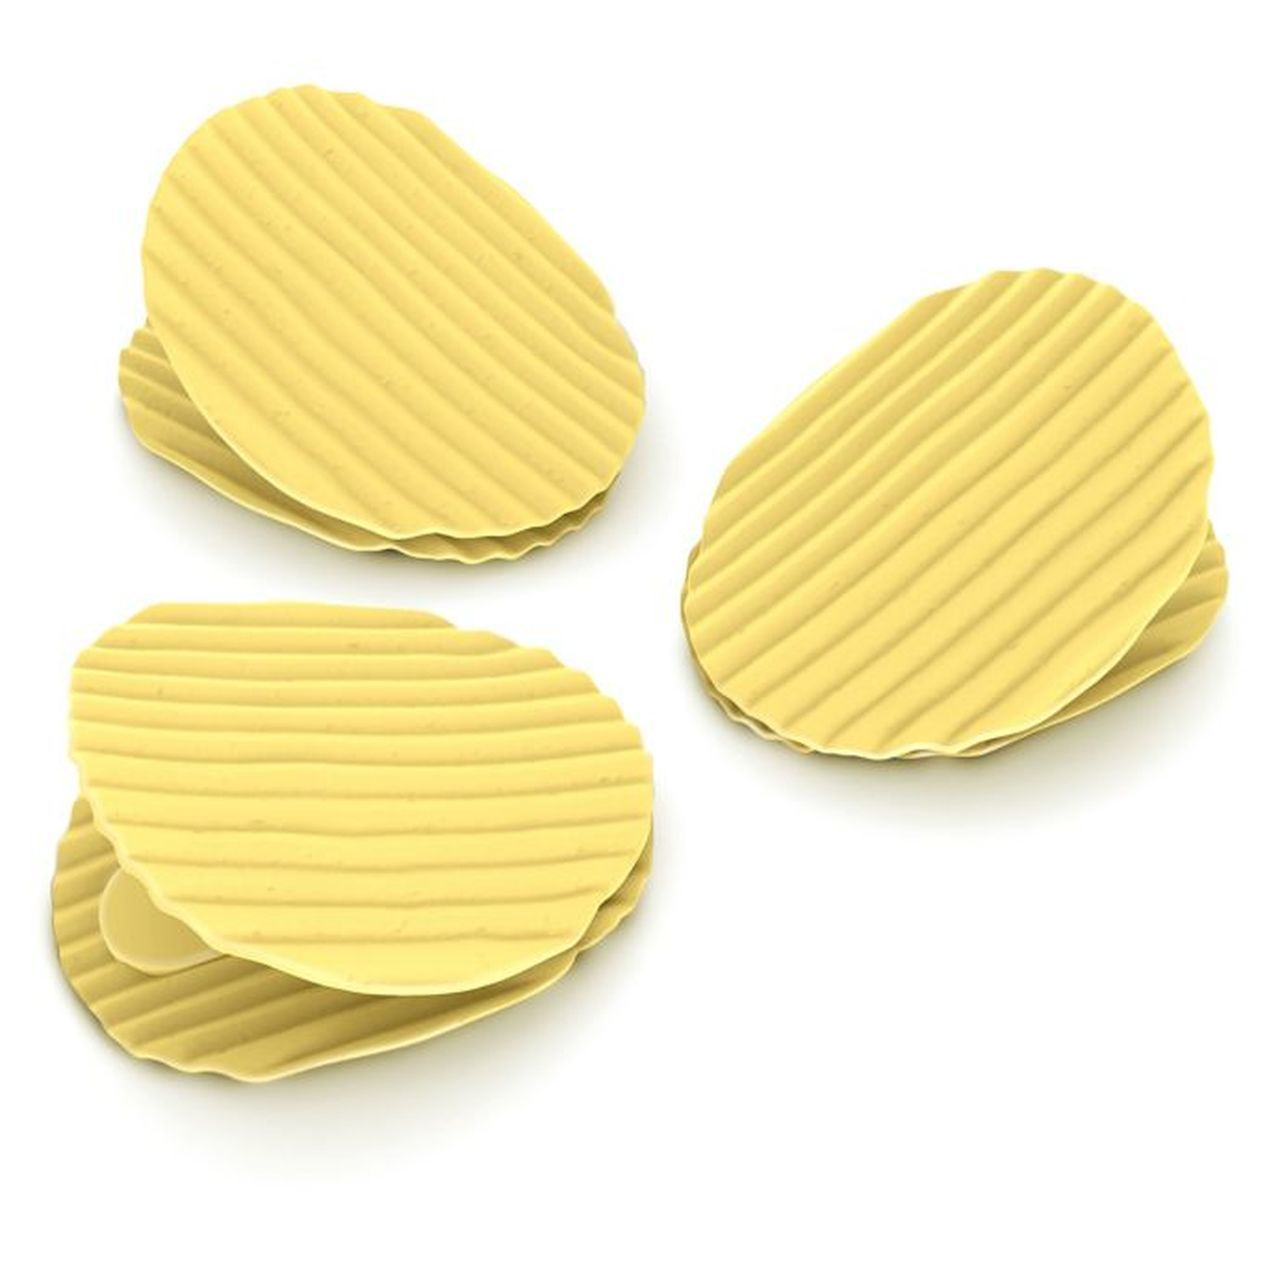 Fred Potato Clips - Food Bag Clips